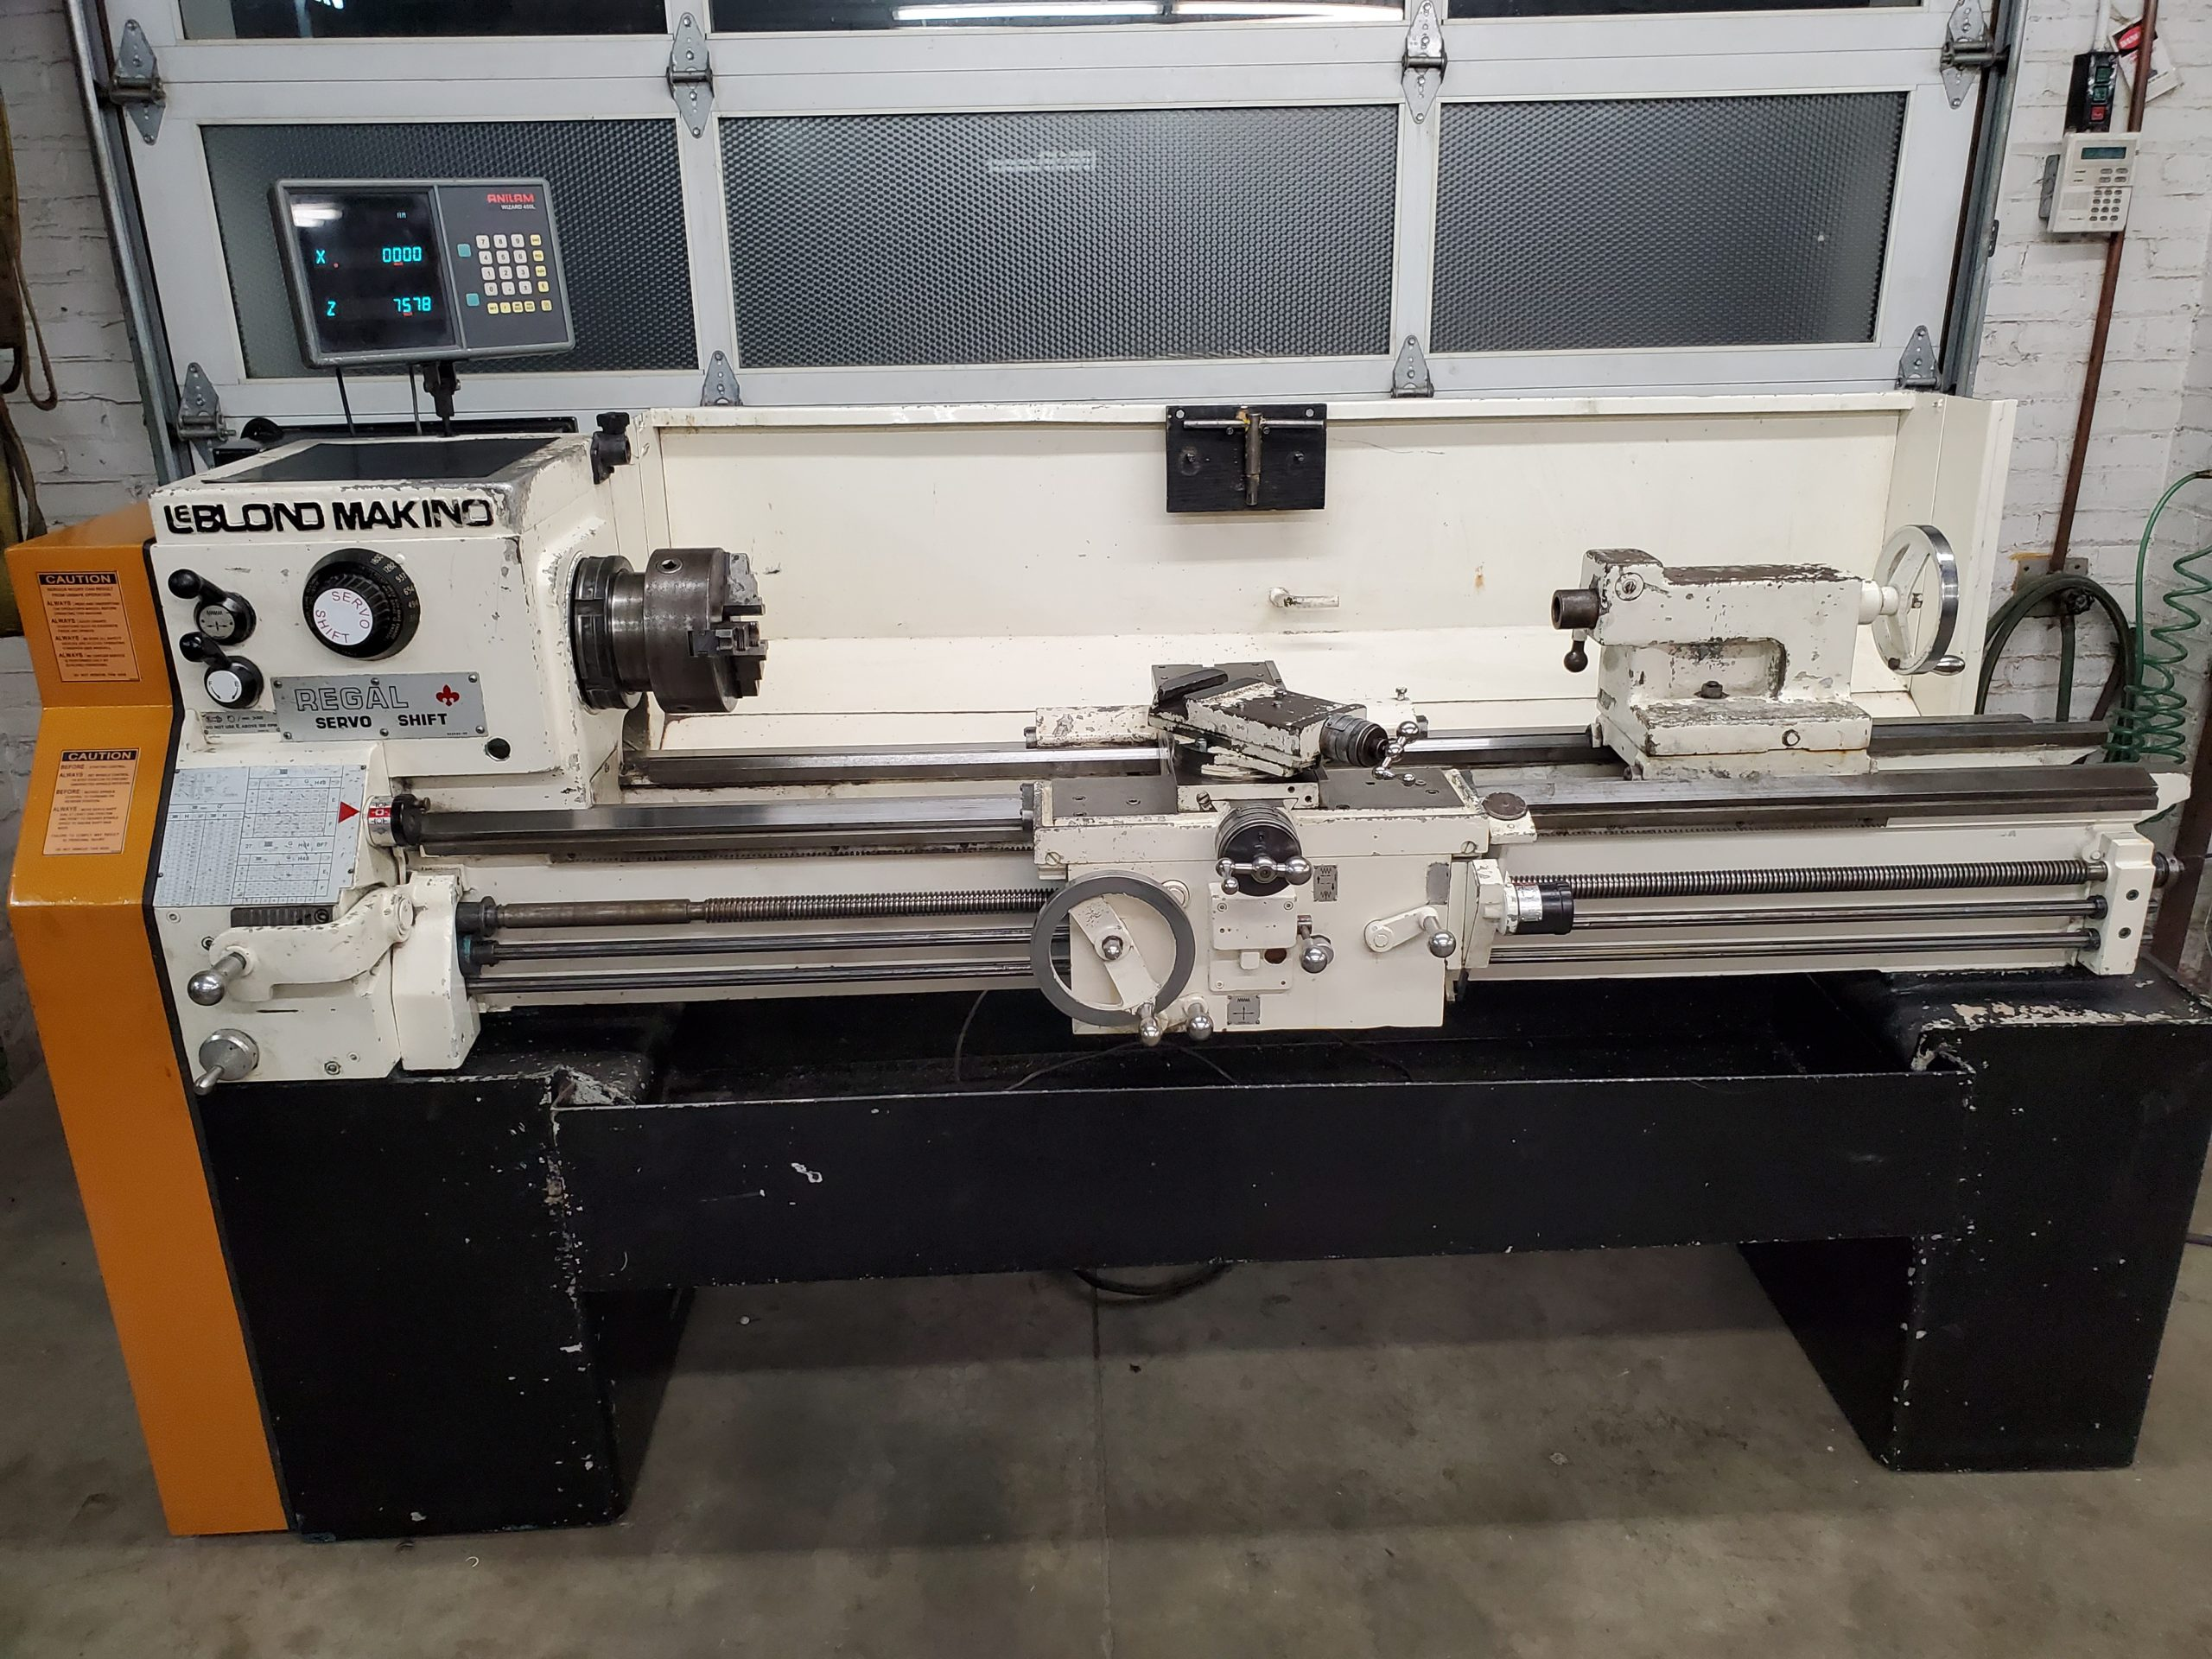 Leblond Makino 15 x 54 Lathe L1 Tapered Nose Spindle spindle Image